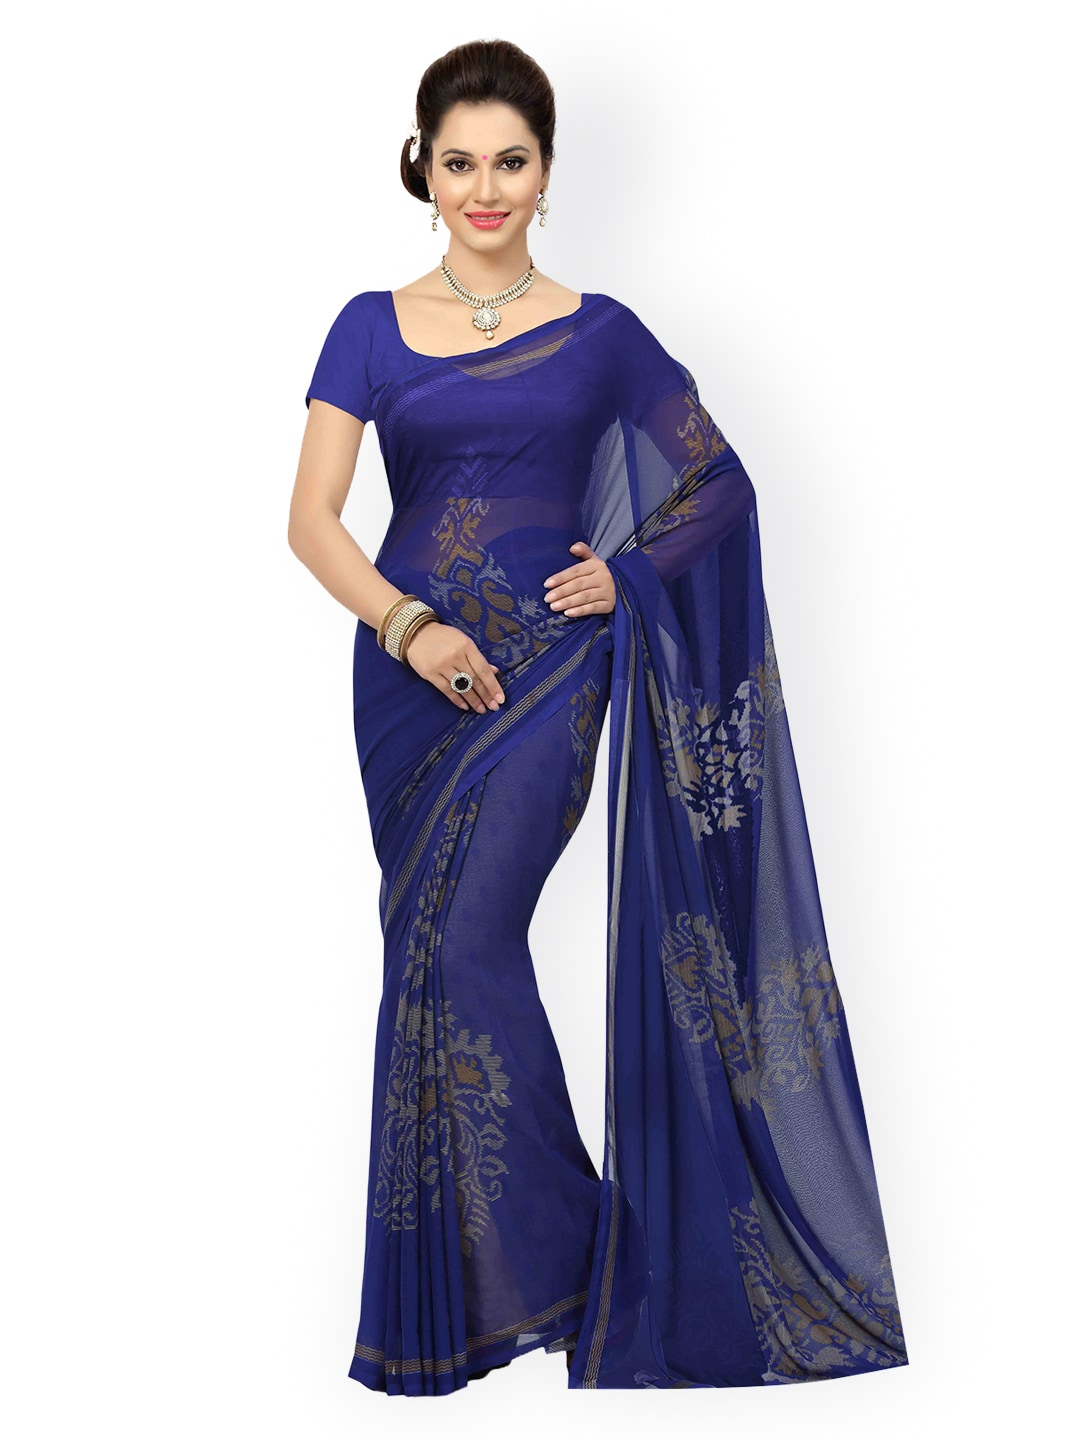 cfbf4eb947f6b3 Georgette Sarees - Buy Georgette Saree Online in India